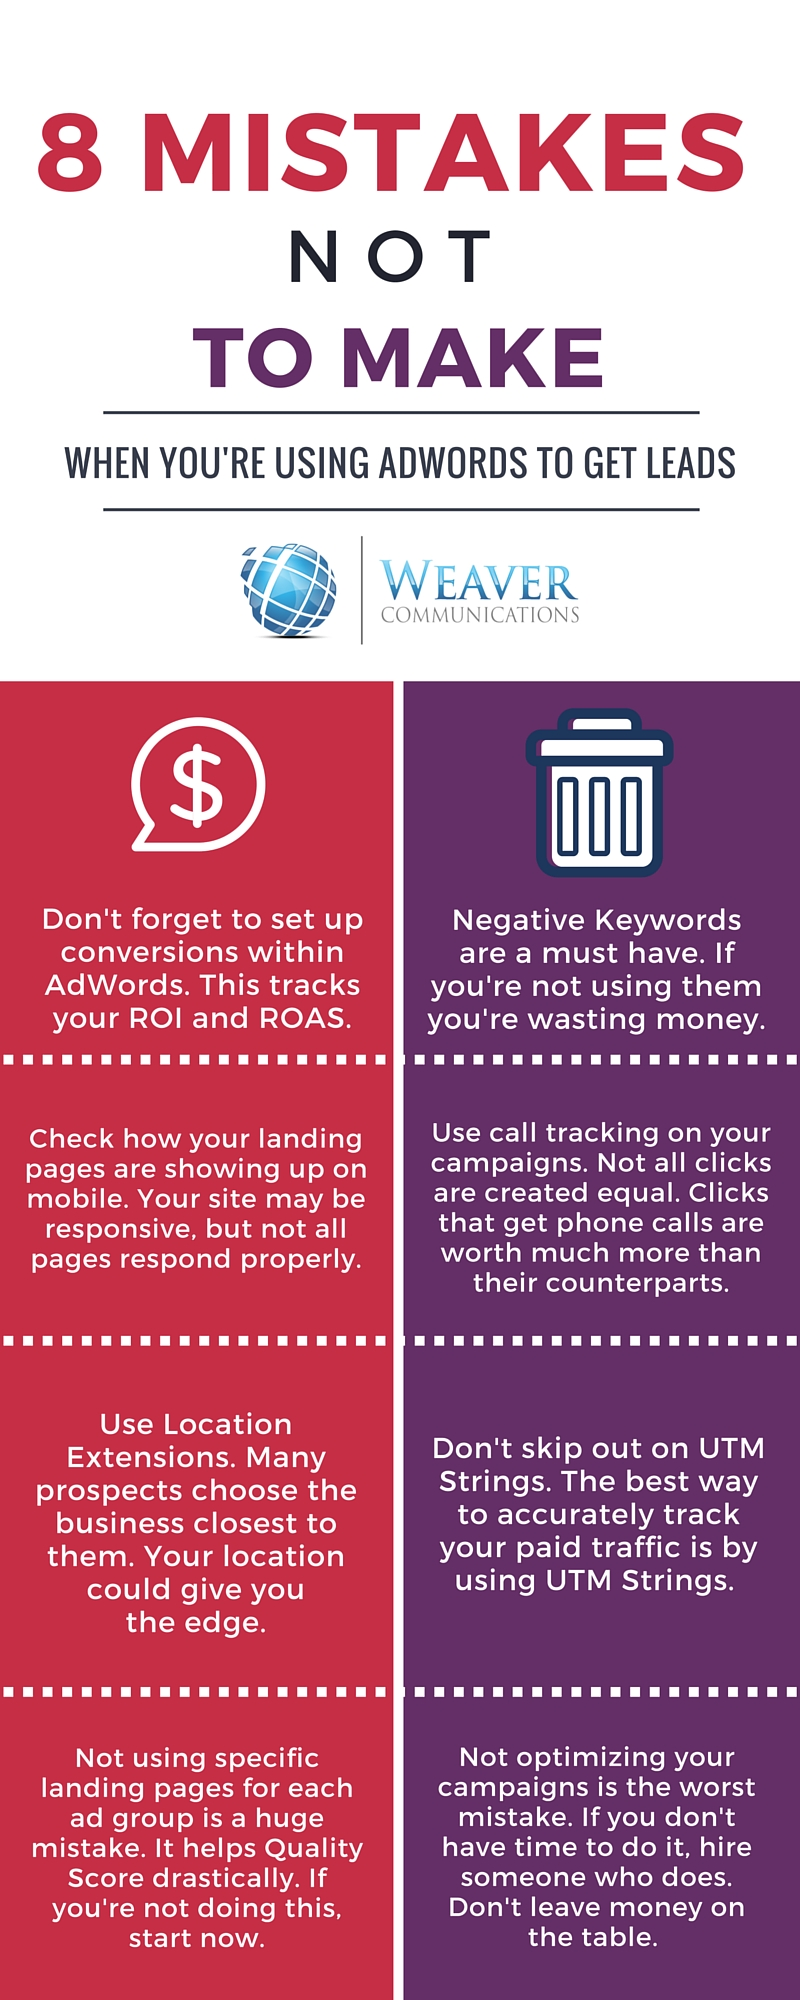 8 AdWords Mistakes NOT to Make with Lead Generation